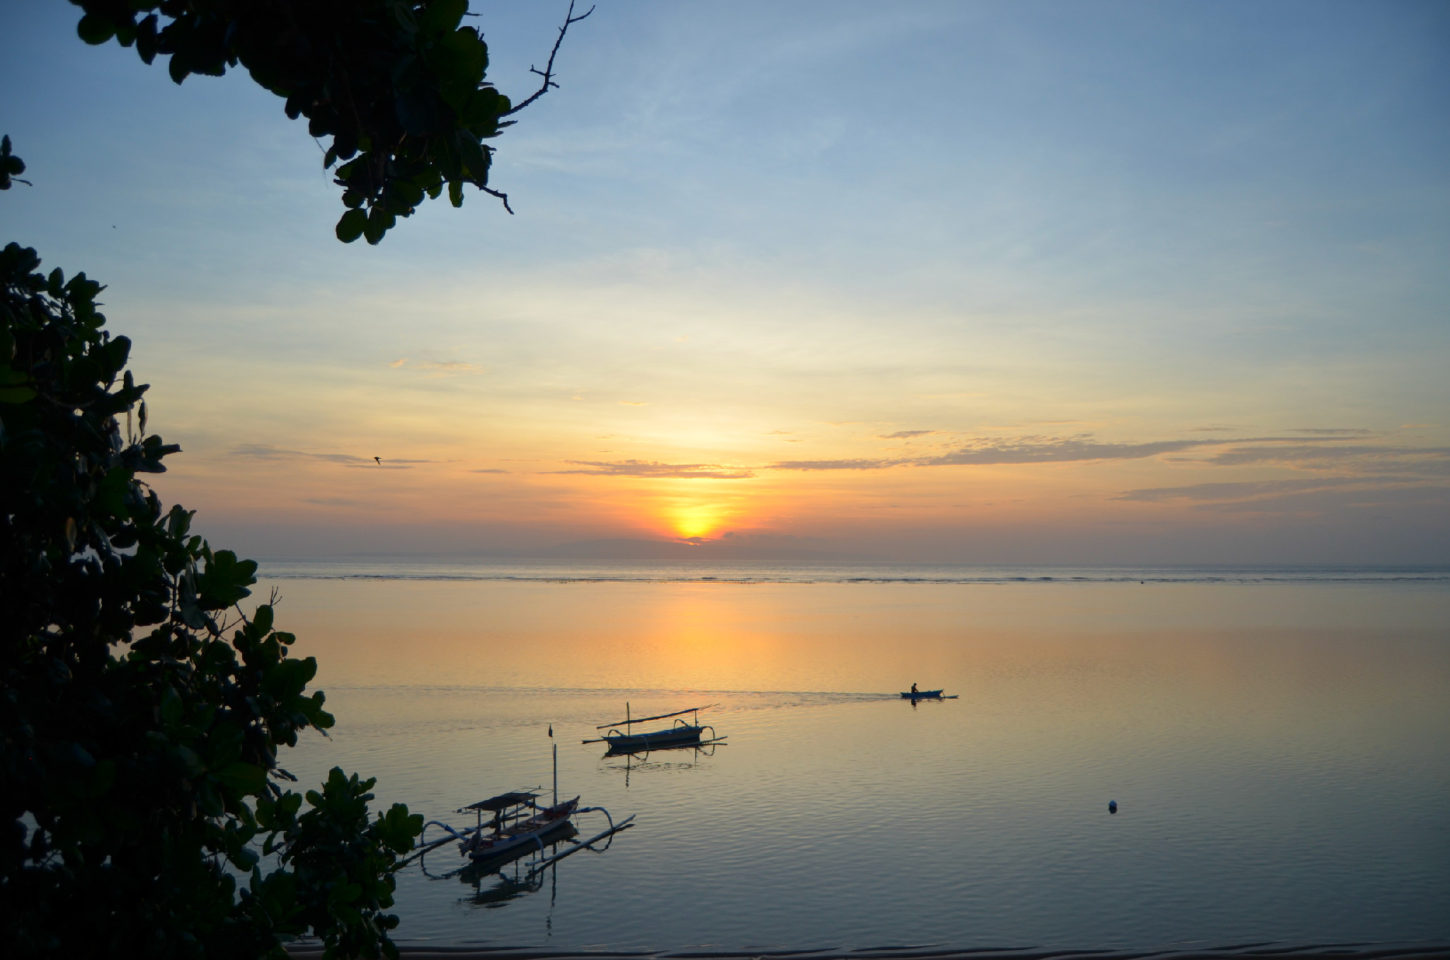 lifestyle redesign  - dsc 0195edited - Bali Getaway: Where to Stay and What to See in Sanur